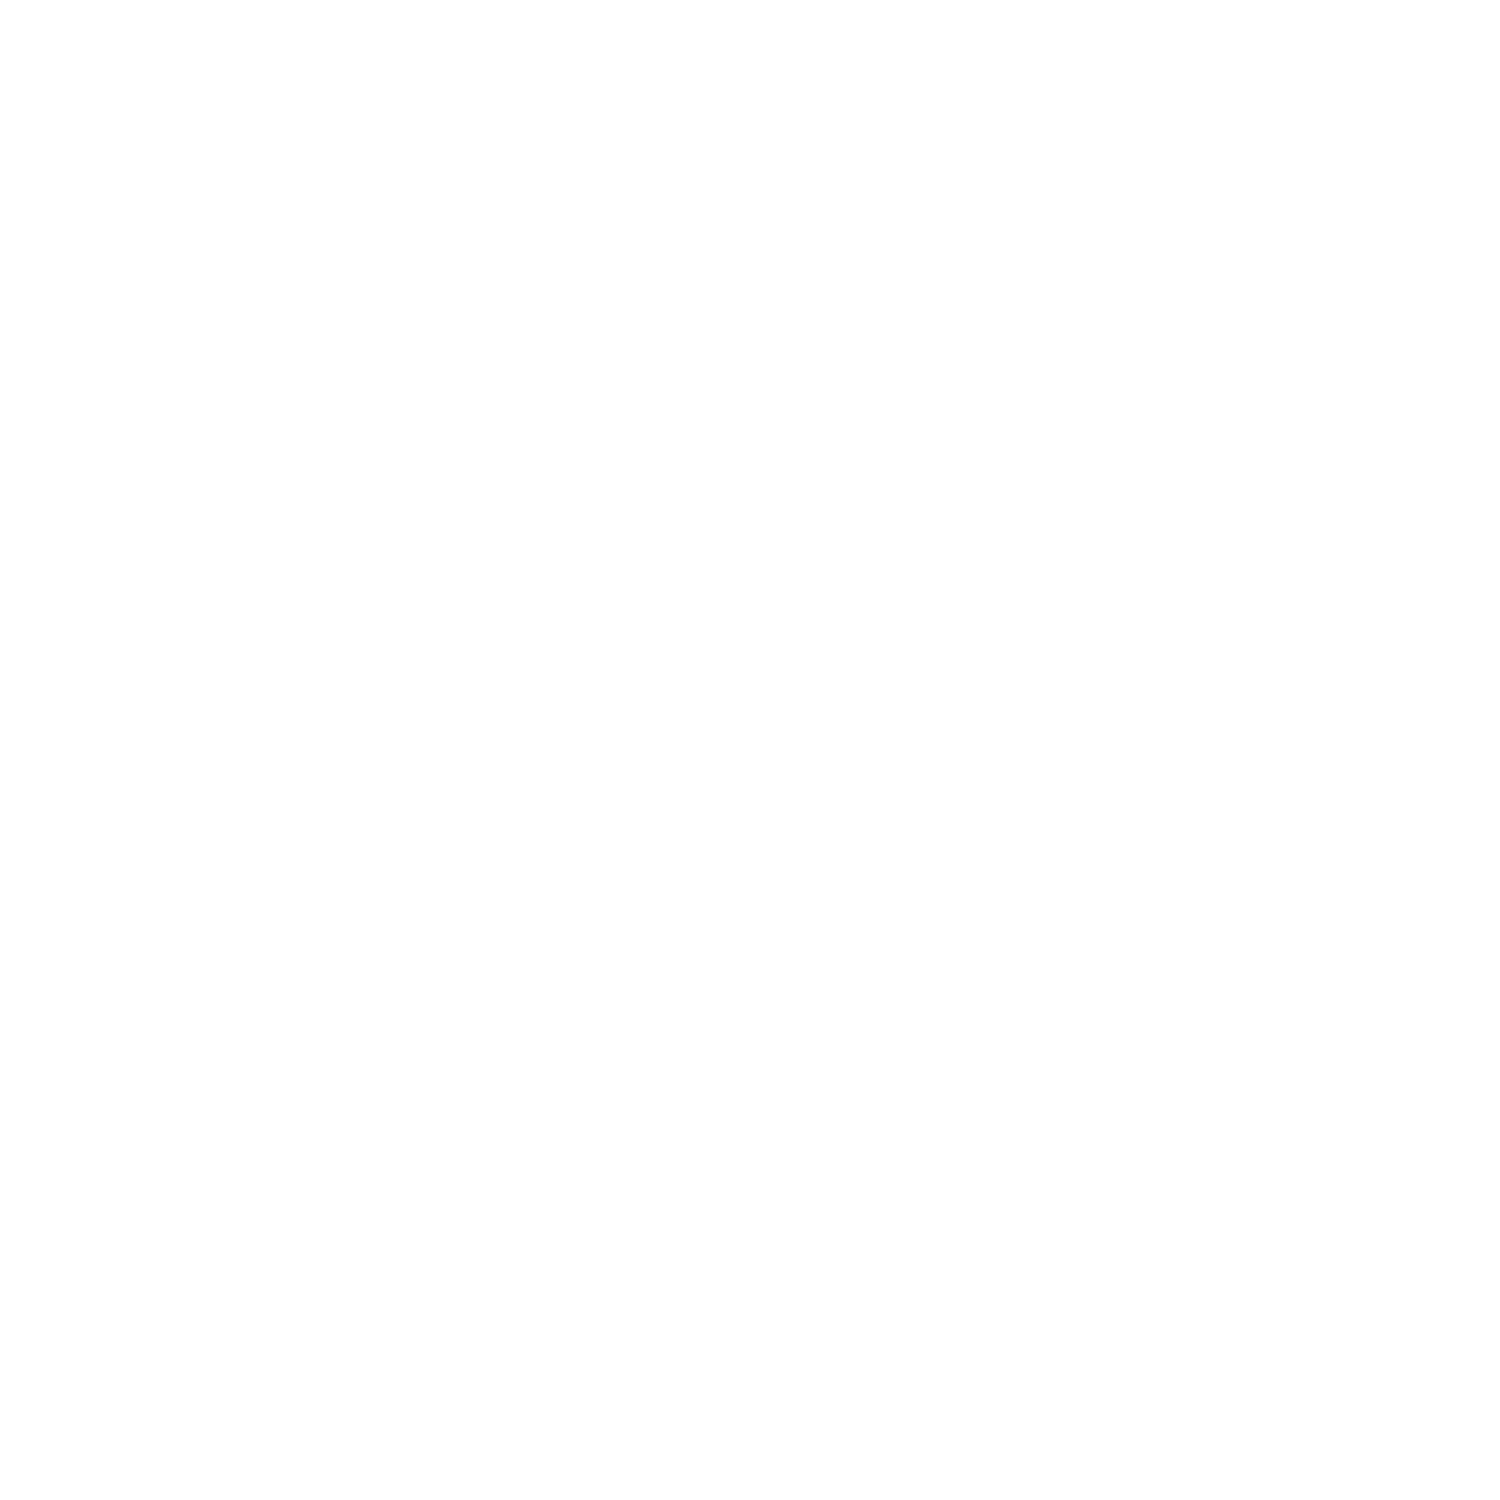 Bare Bros Co